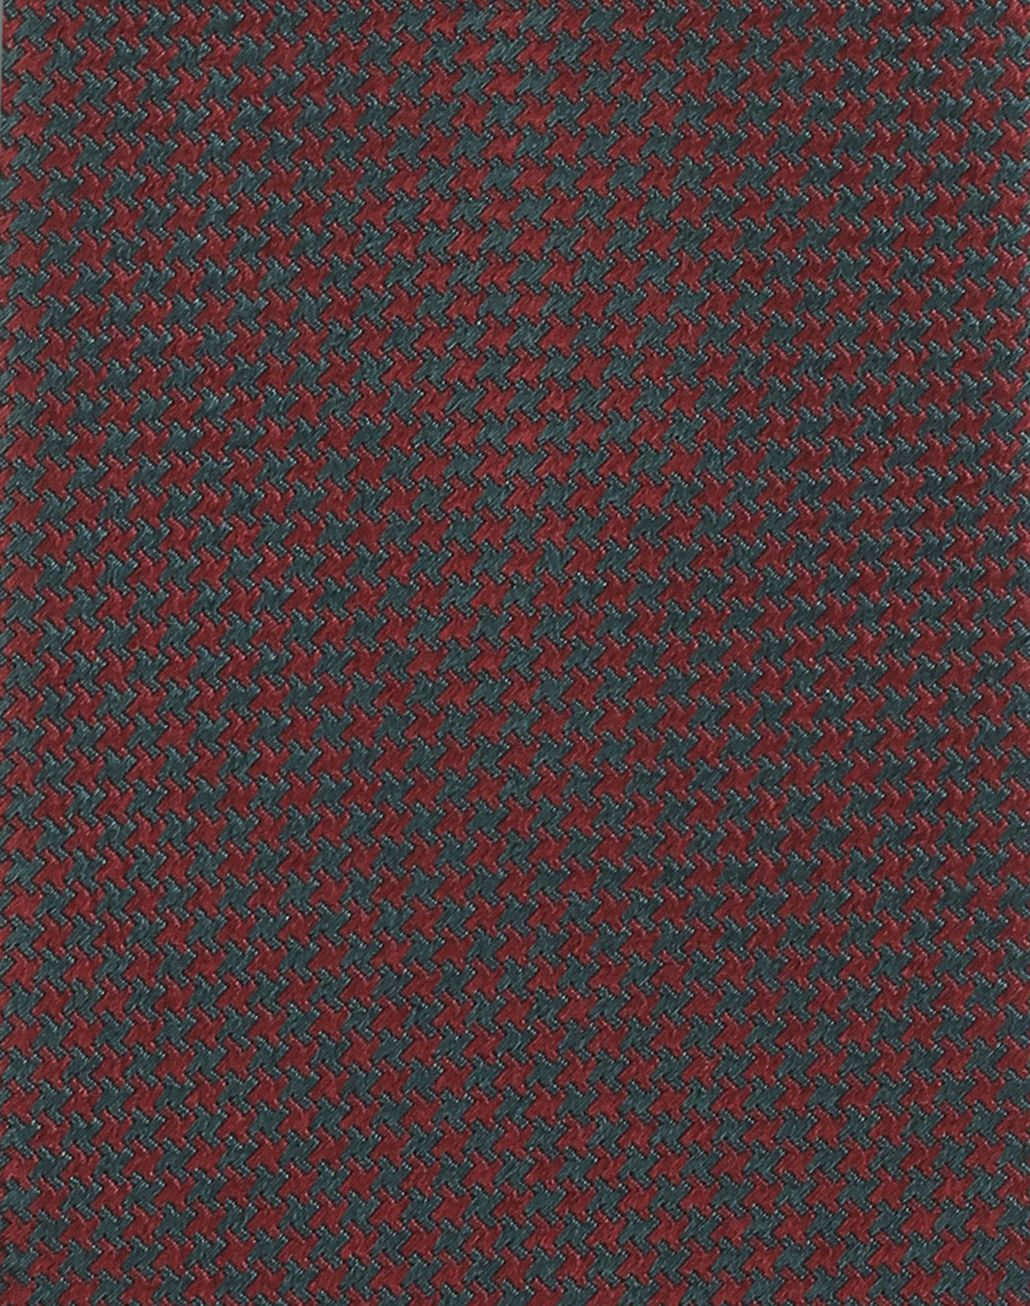 BRIONI Bordeaux and Teal Micro Houndstooth Tie Tie Man d